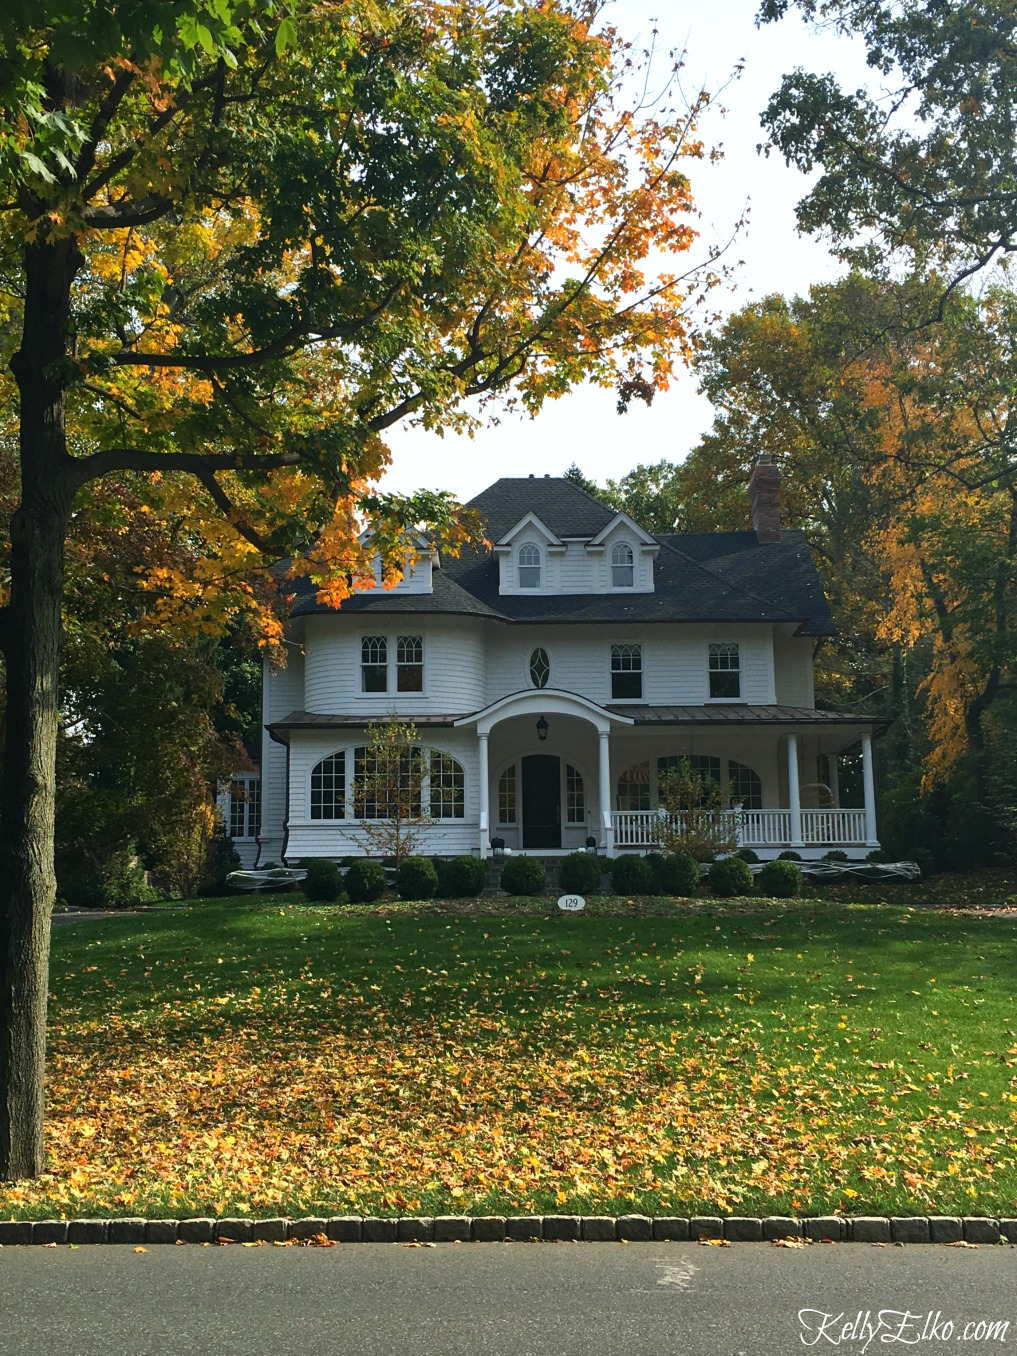 Curb appeal fall homes - this old house is stunning against the fall foliage kellyelko.com